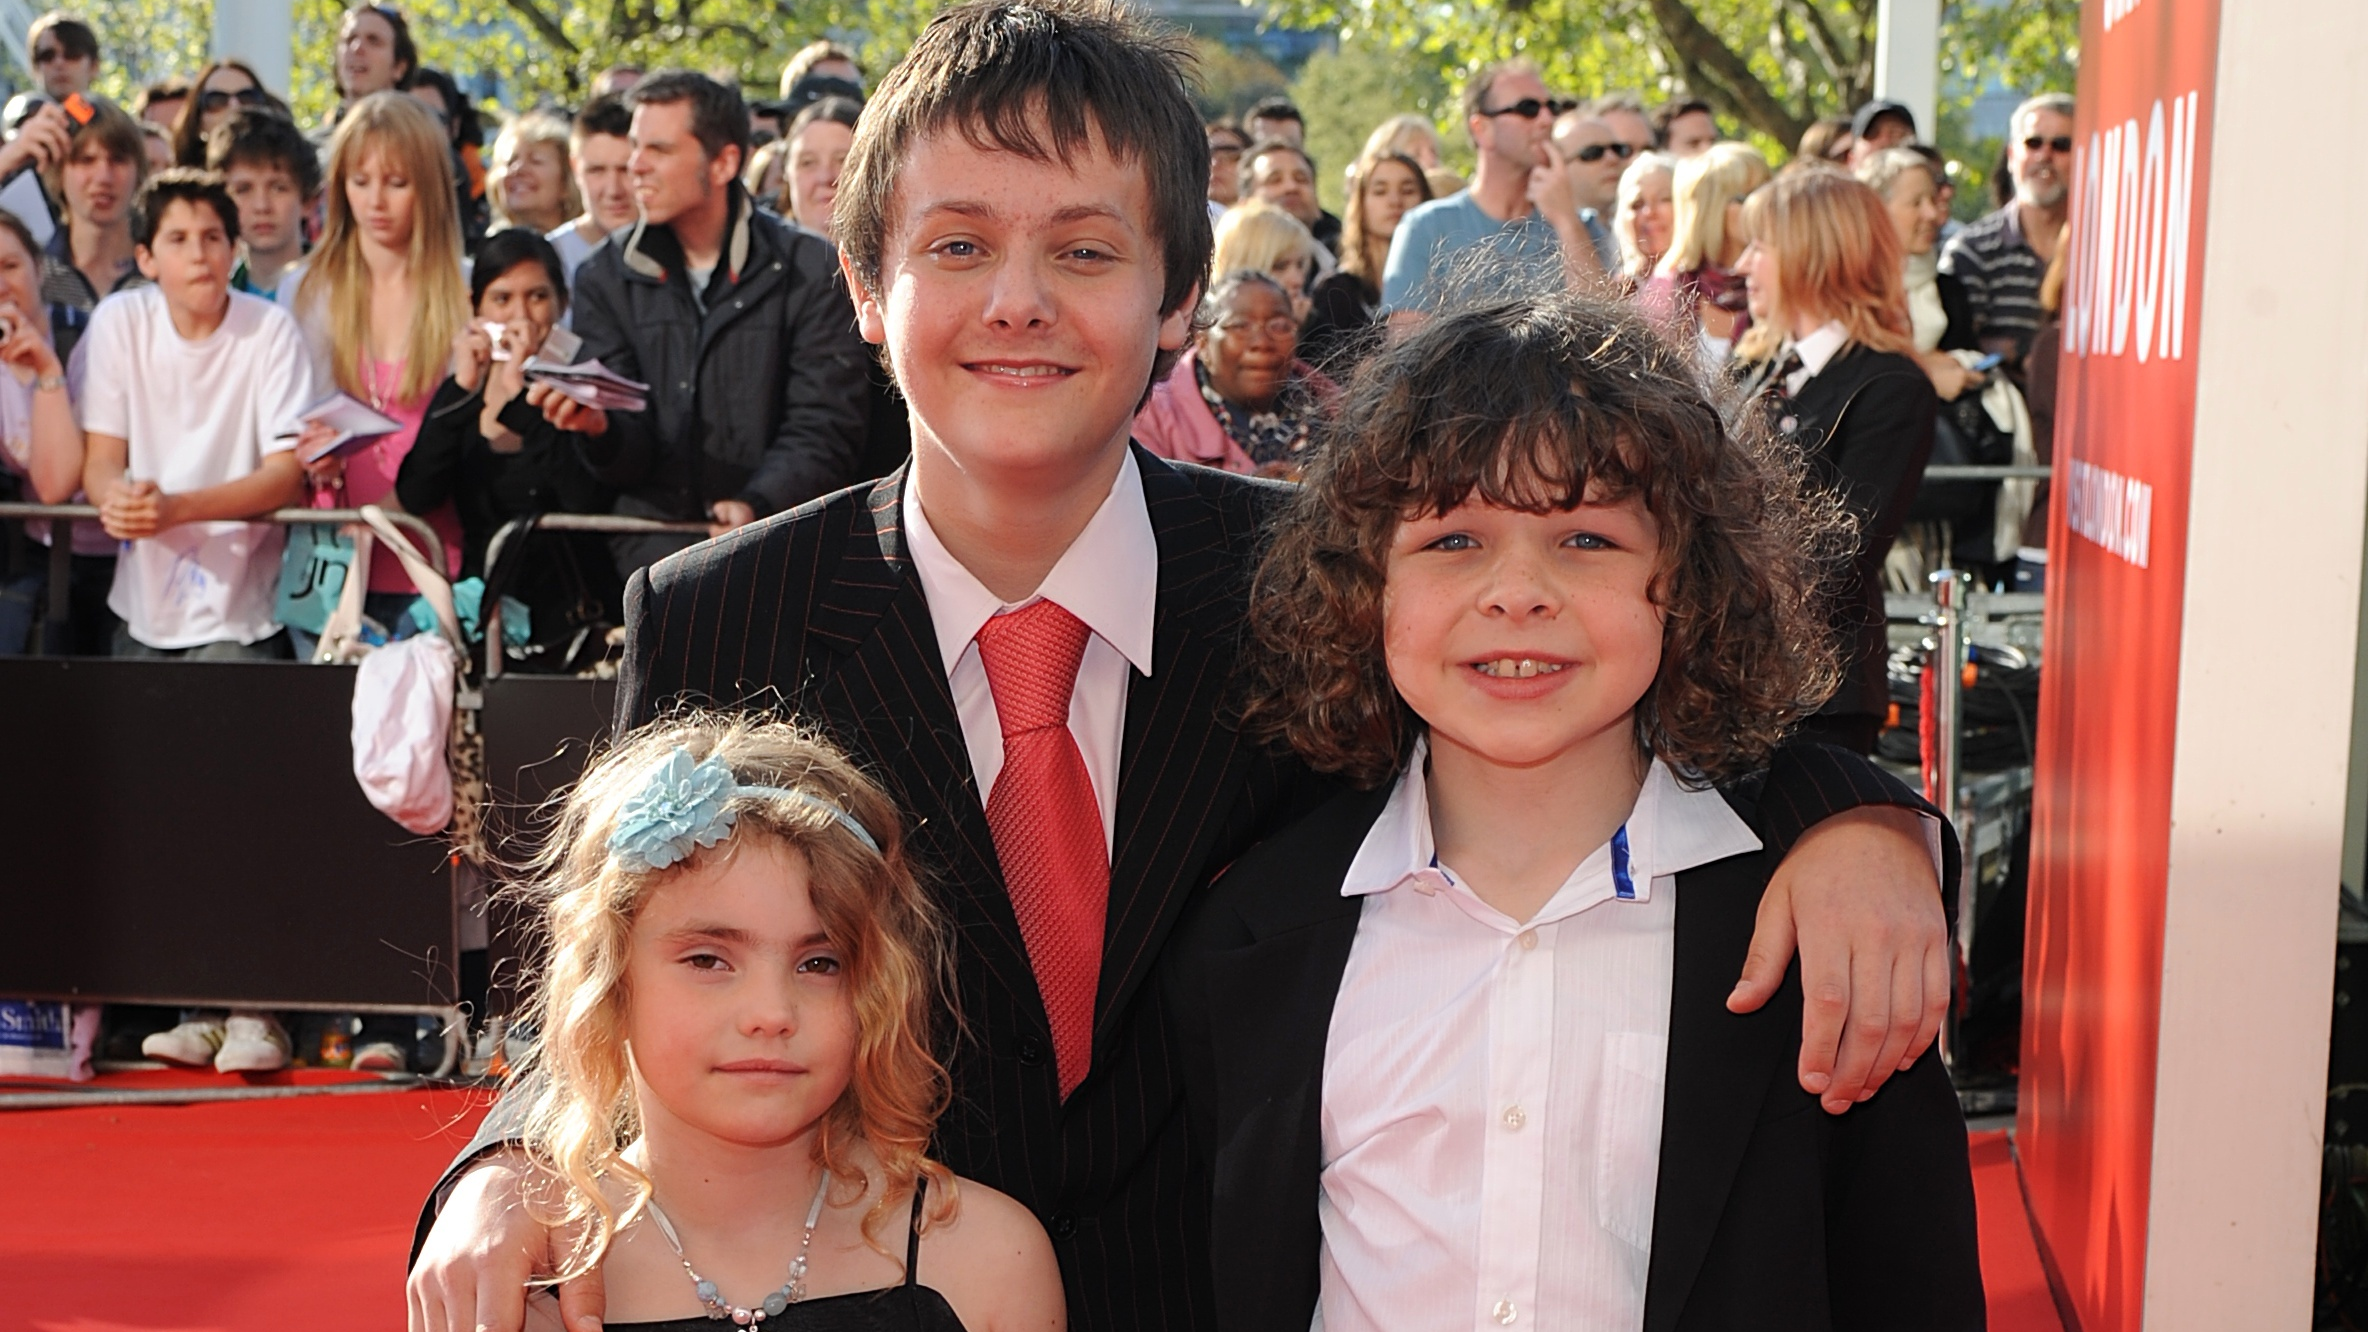 Karen From 'Outnumbered' Just Shared Reunion Picture Of The Cast